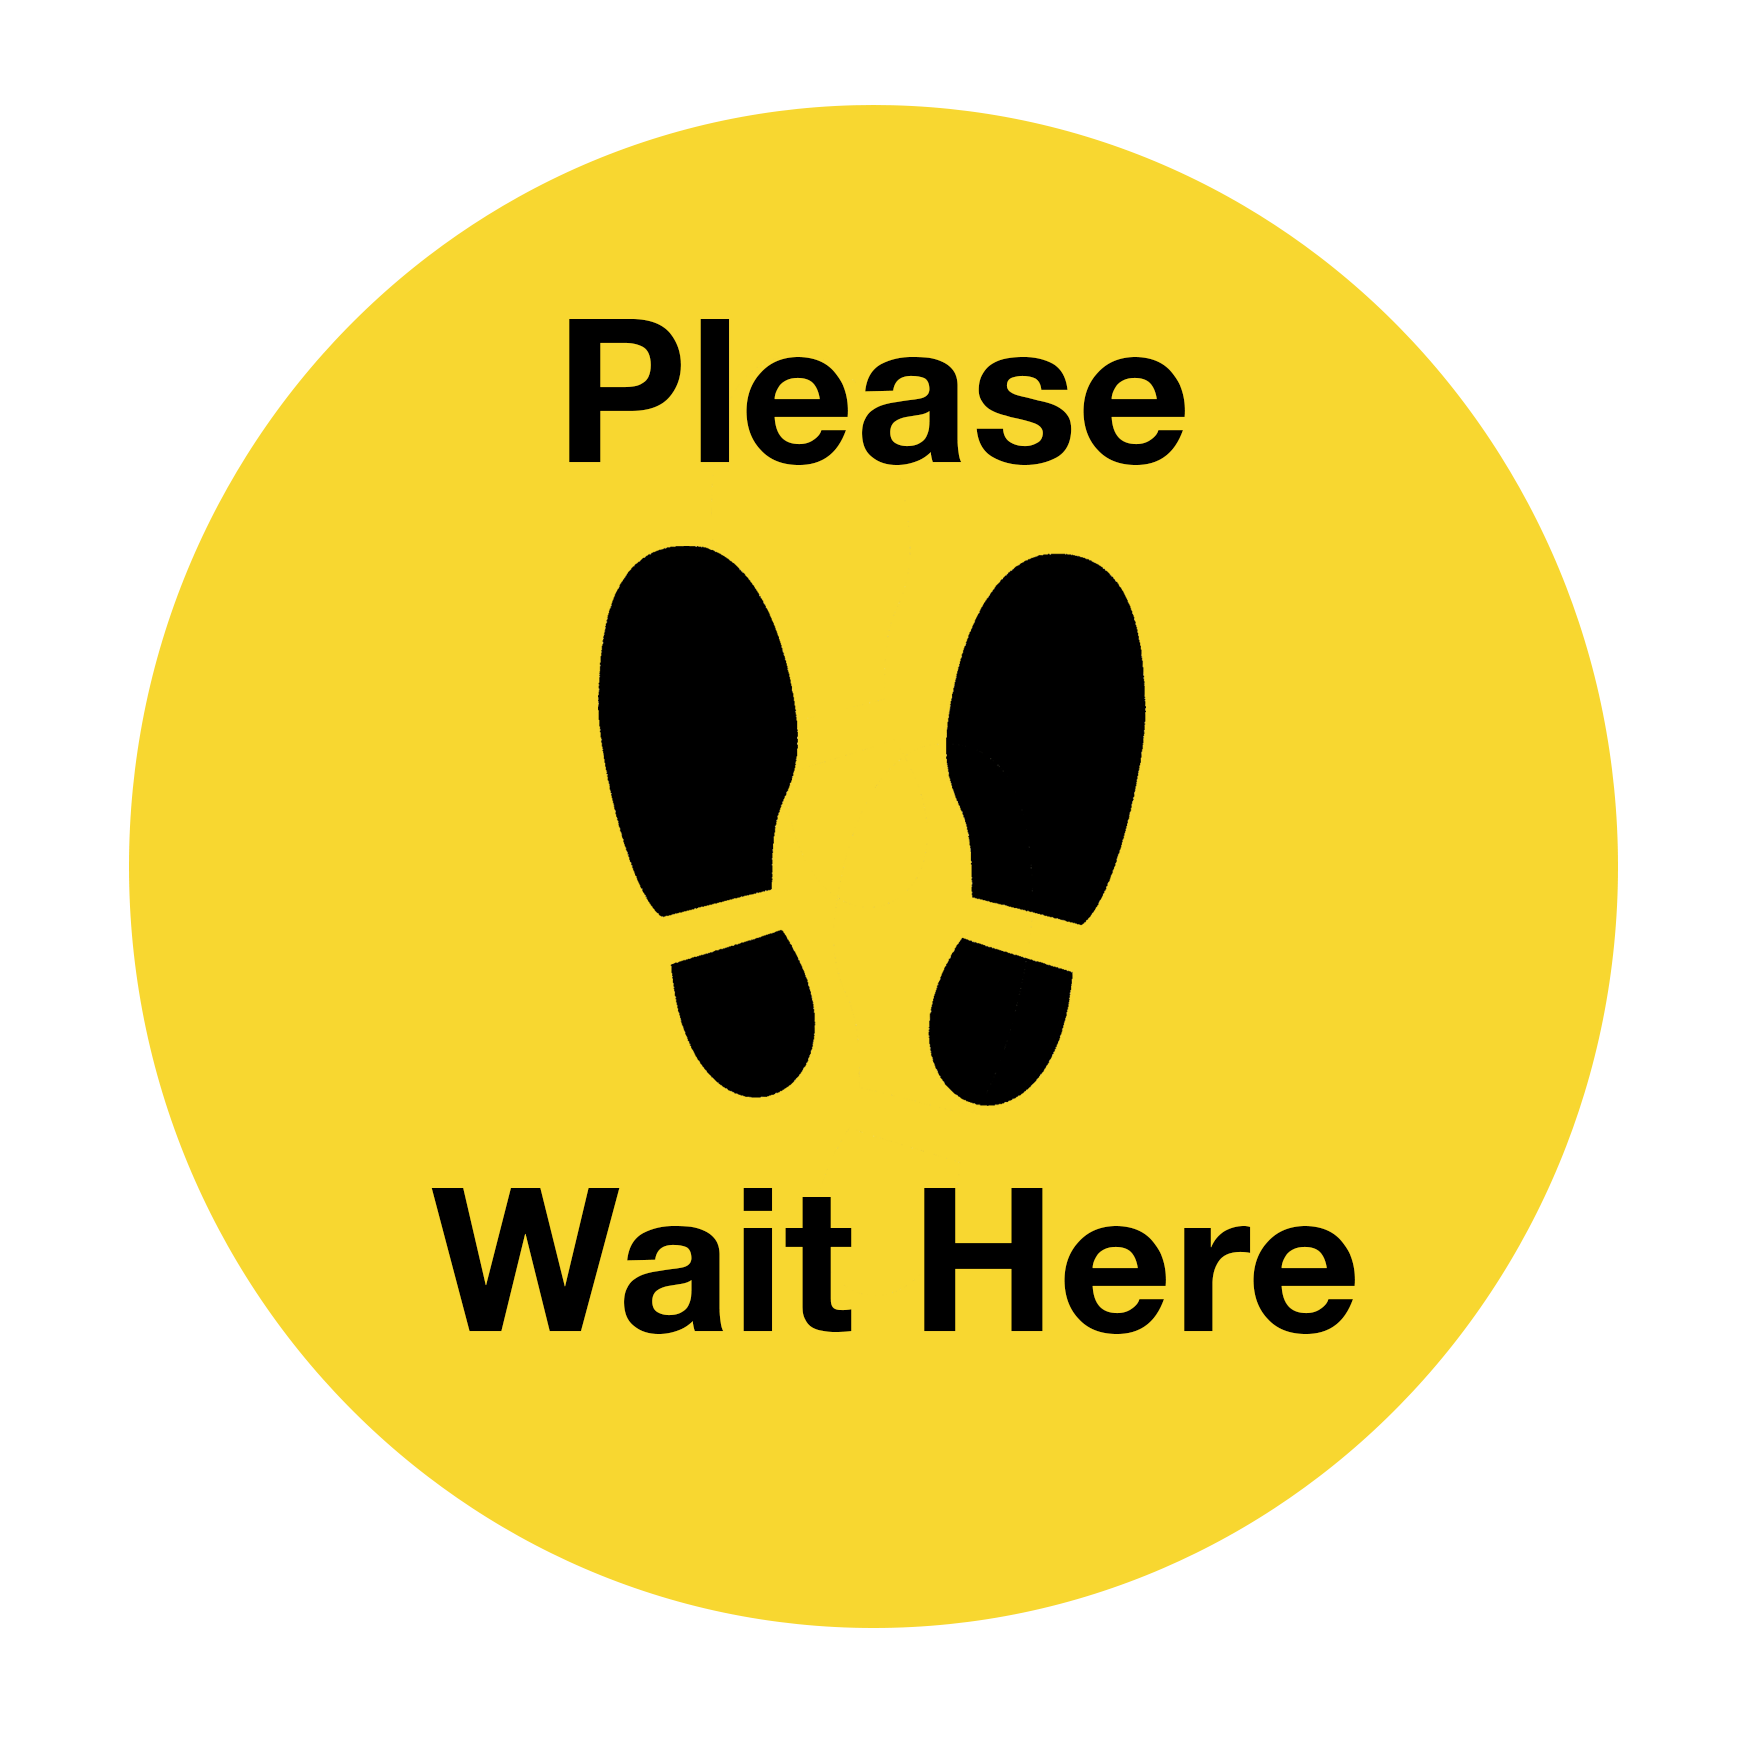 """Image of a yellow circle with black footprints inside and words reading """"please wait here"""""""